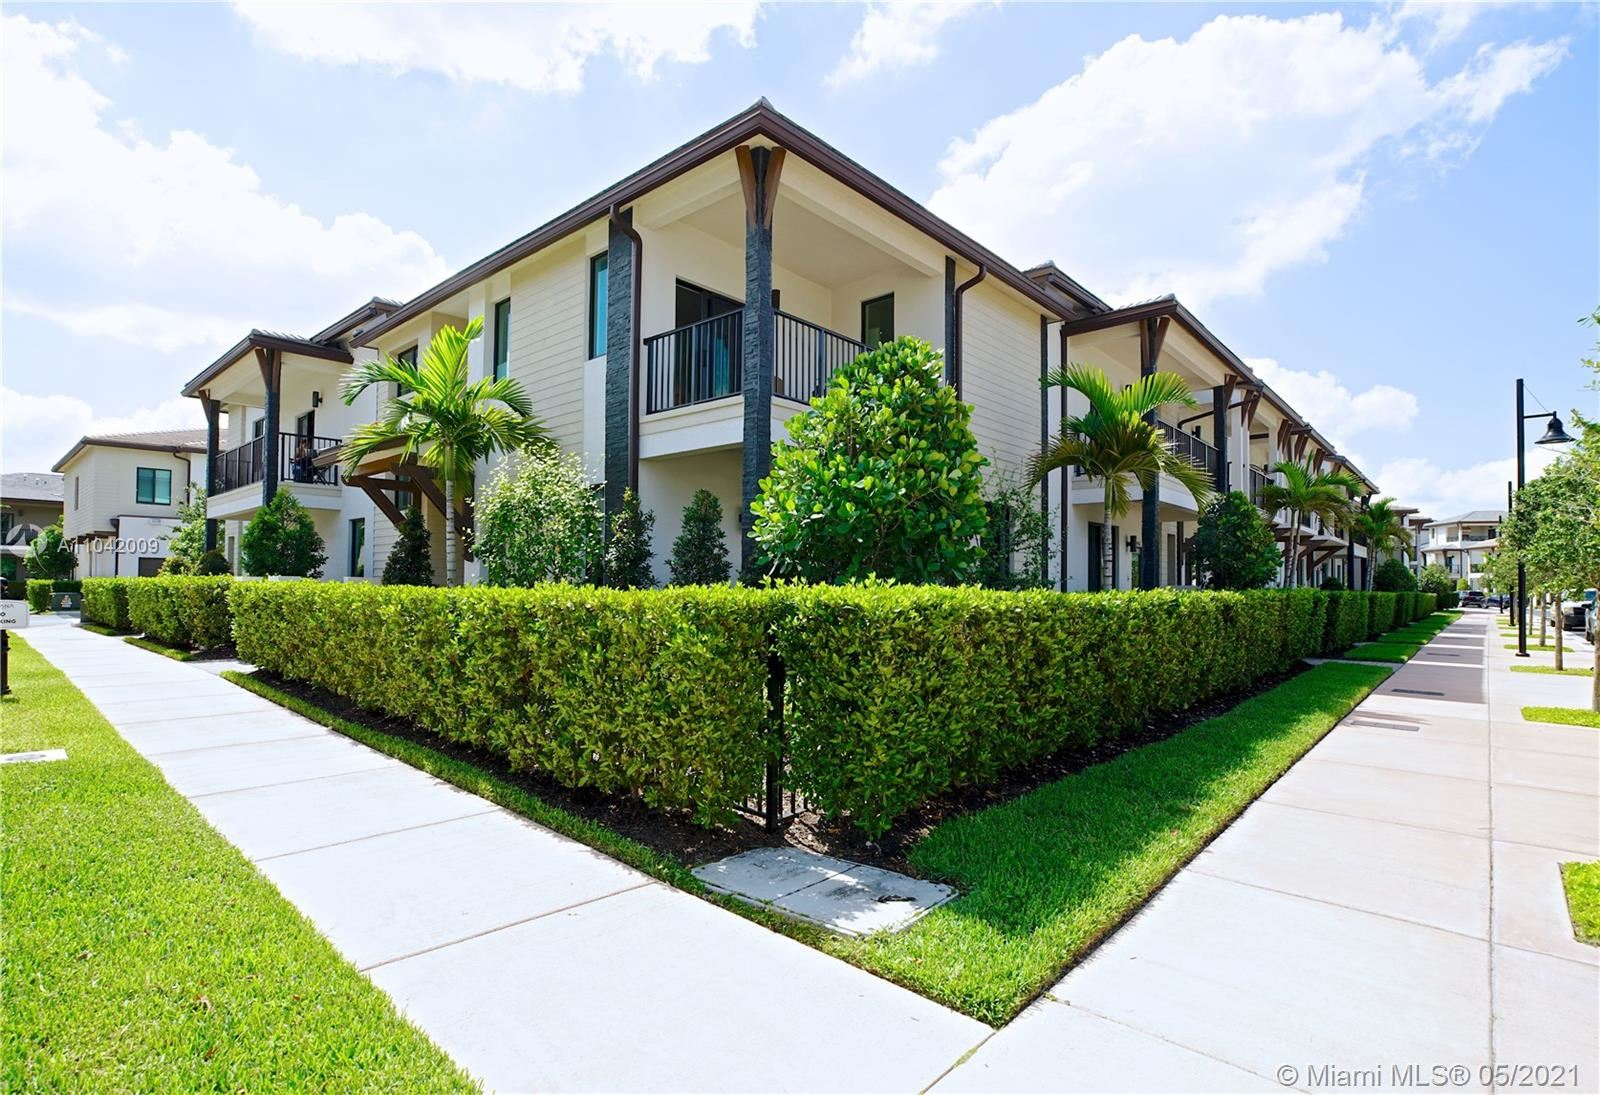 4967 NW 84th Ave #4967, Doral, FL 33166 - #: A11042009